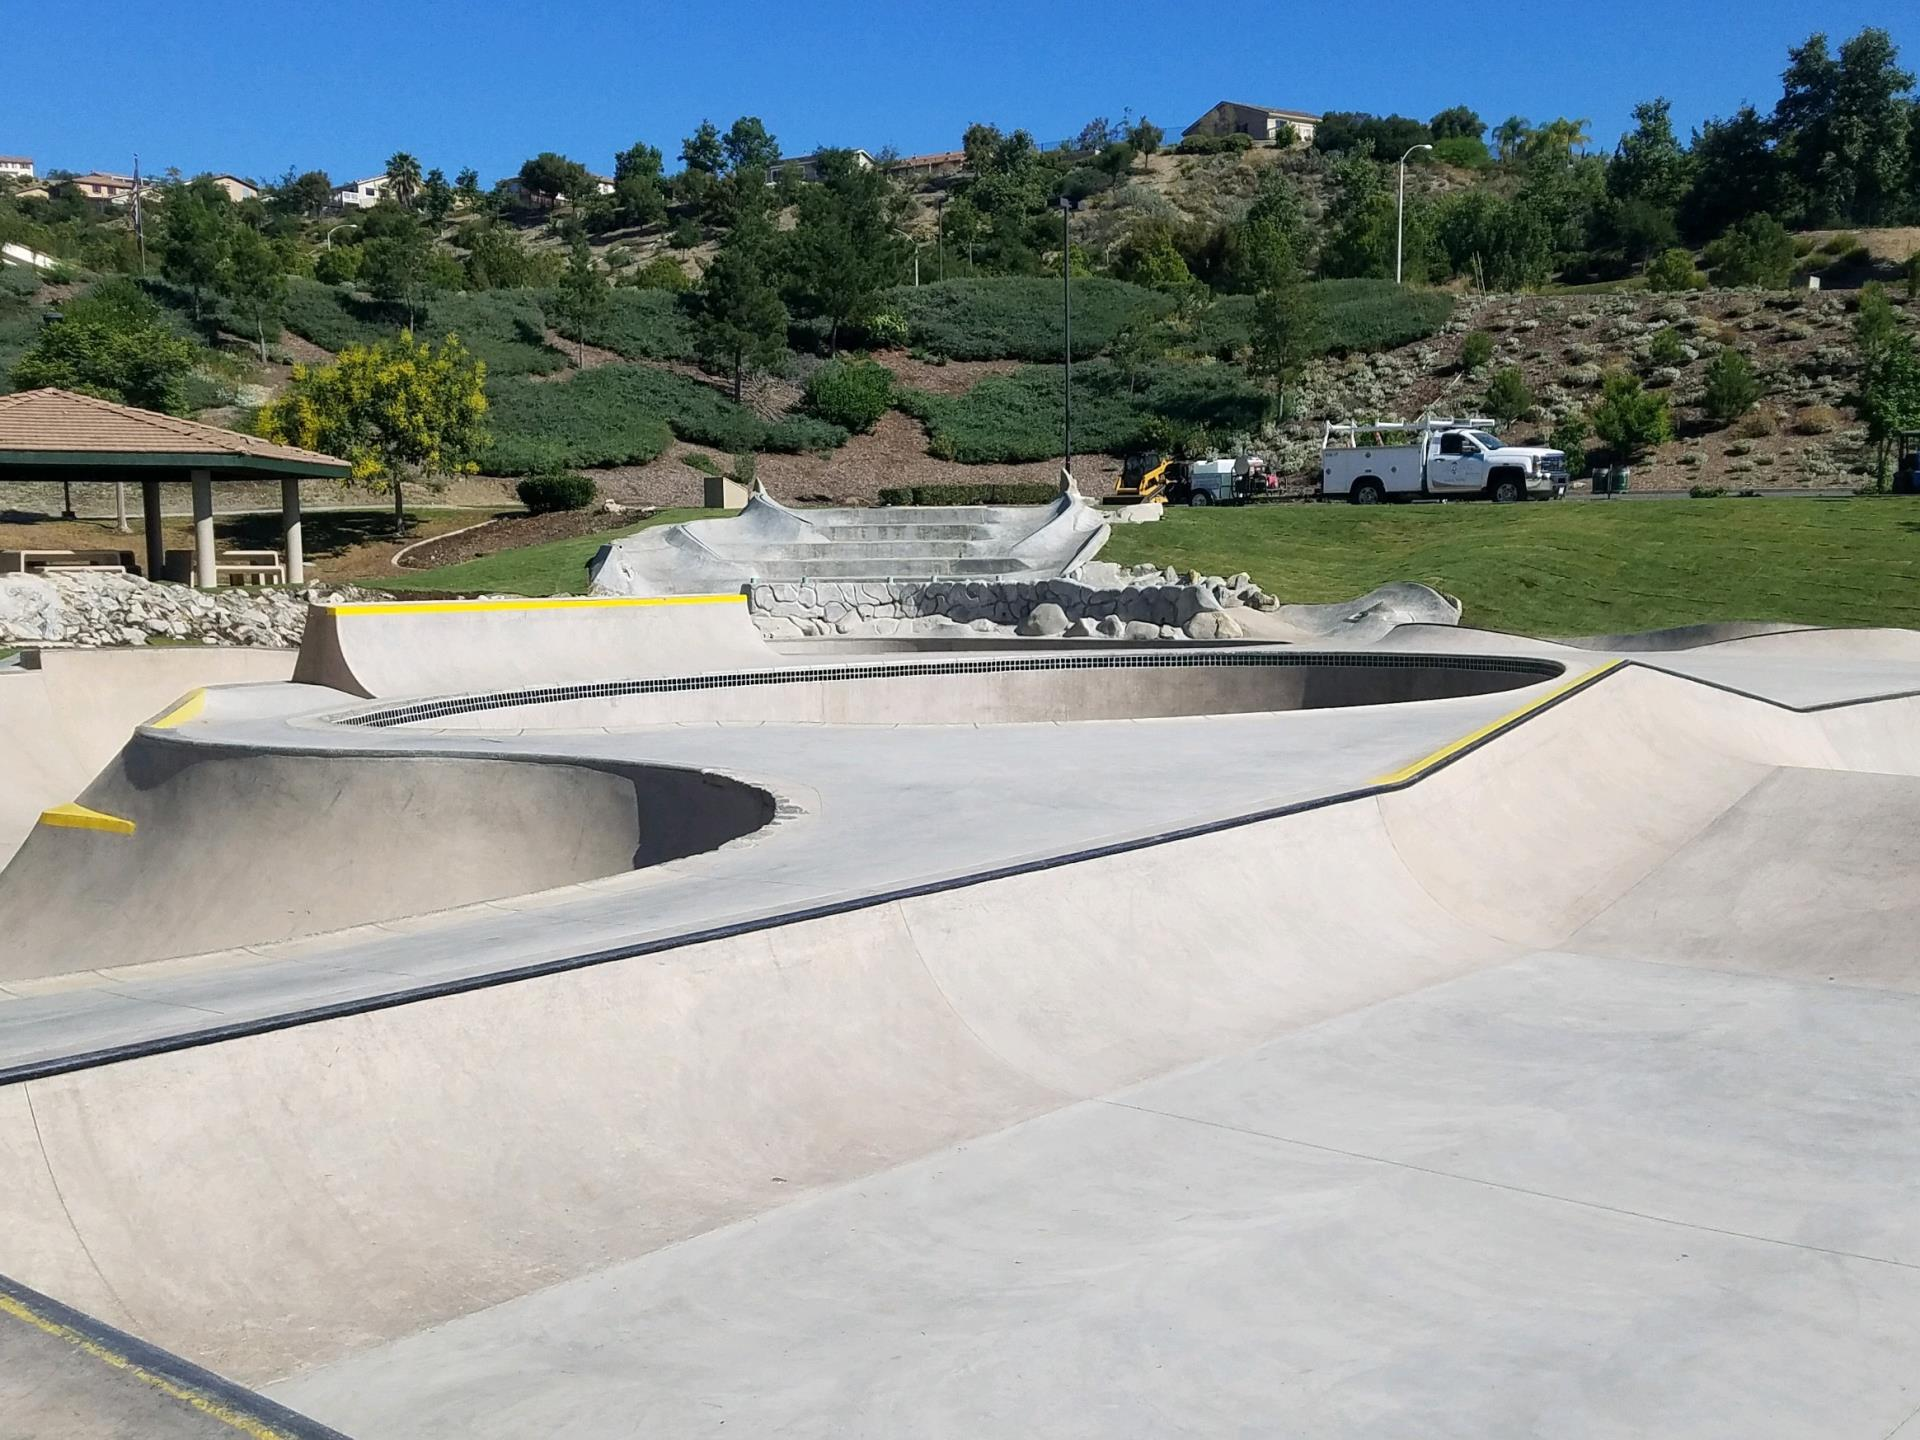 Skate Park Park to Bowls and unique drop in